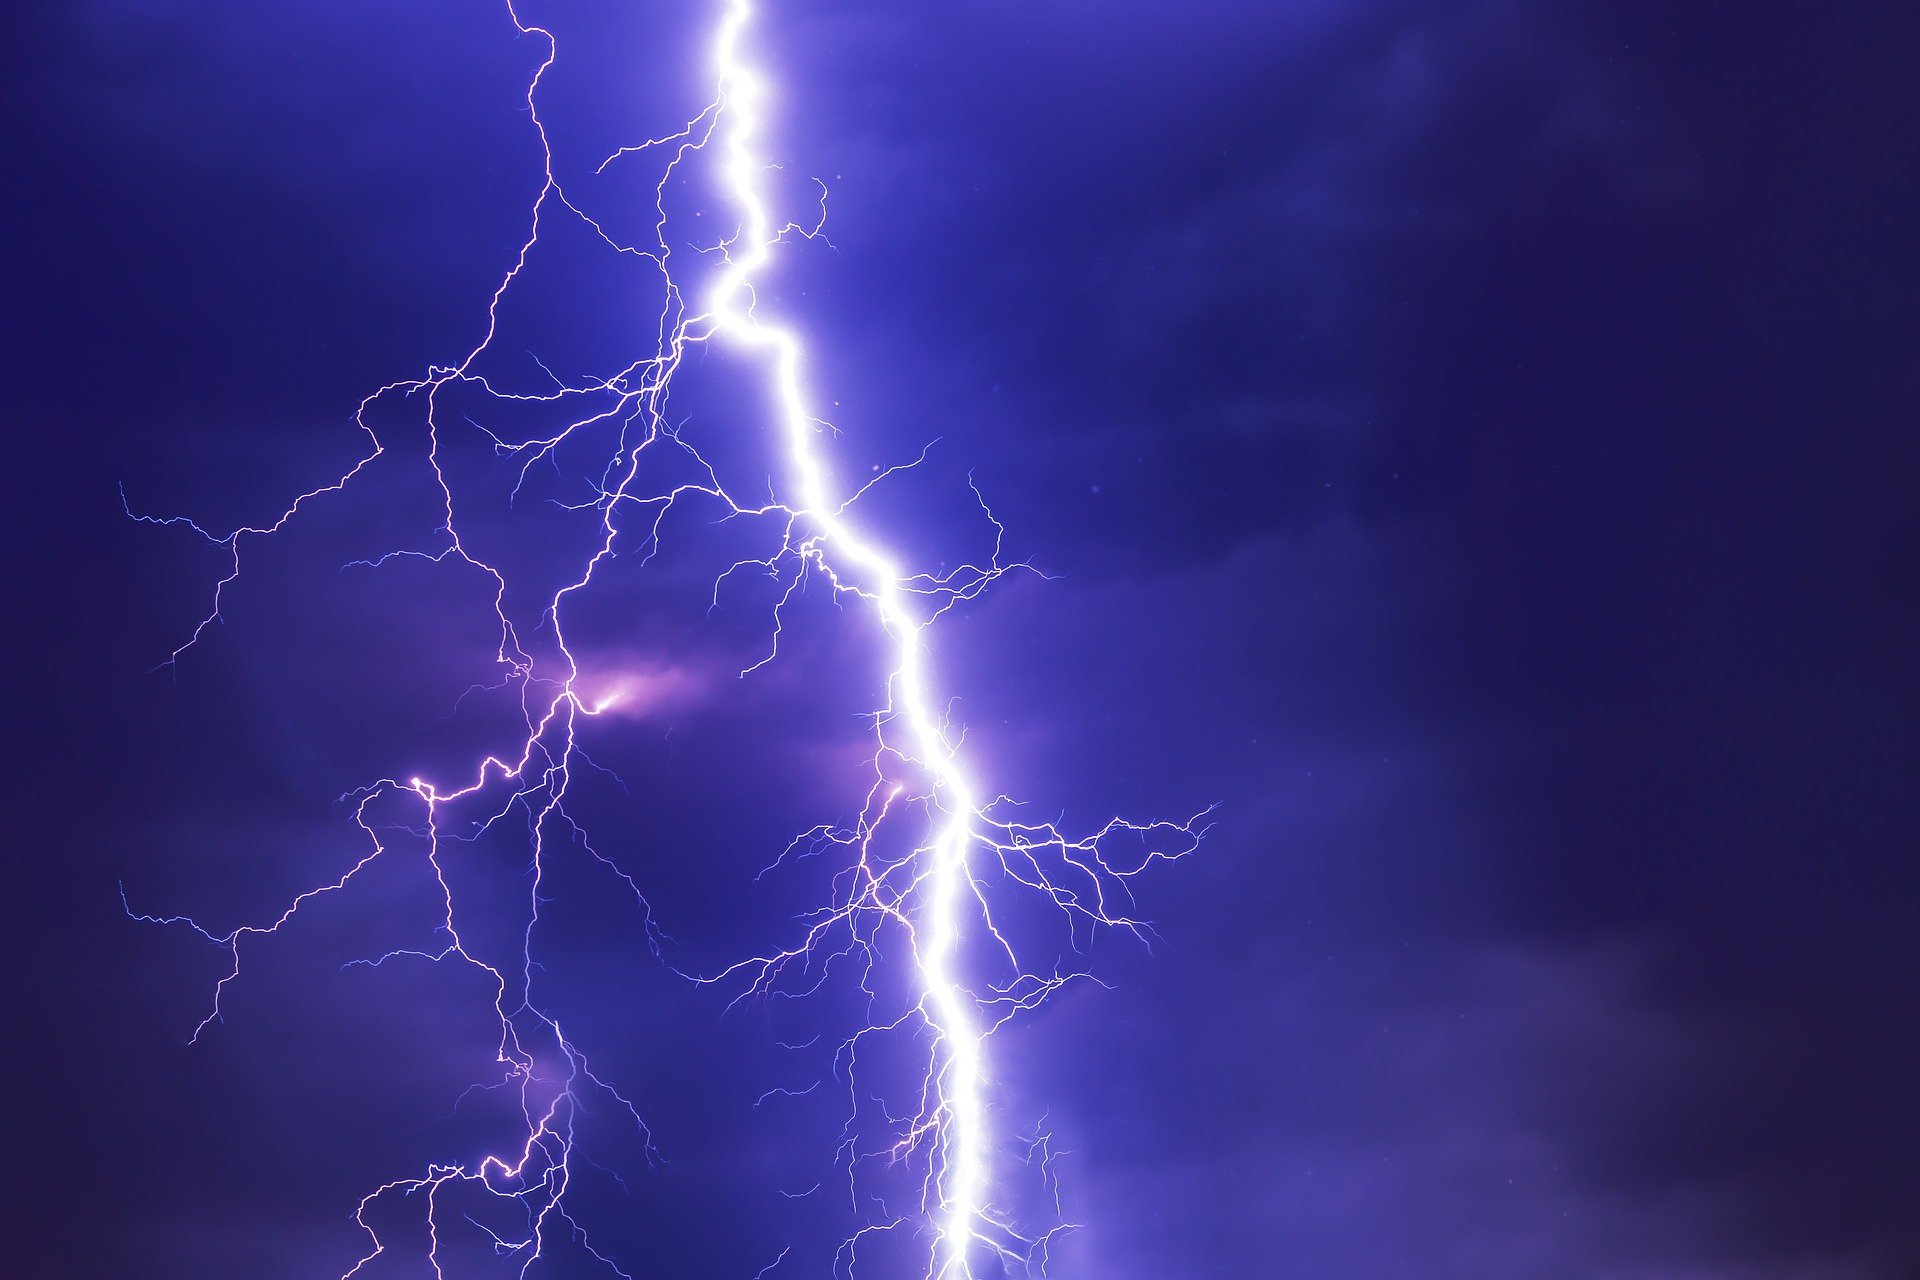 MIT Researchers Developing BTC Lightning Network With Smart Contracts 13